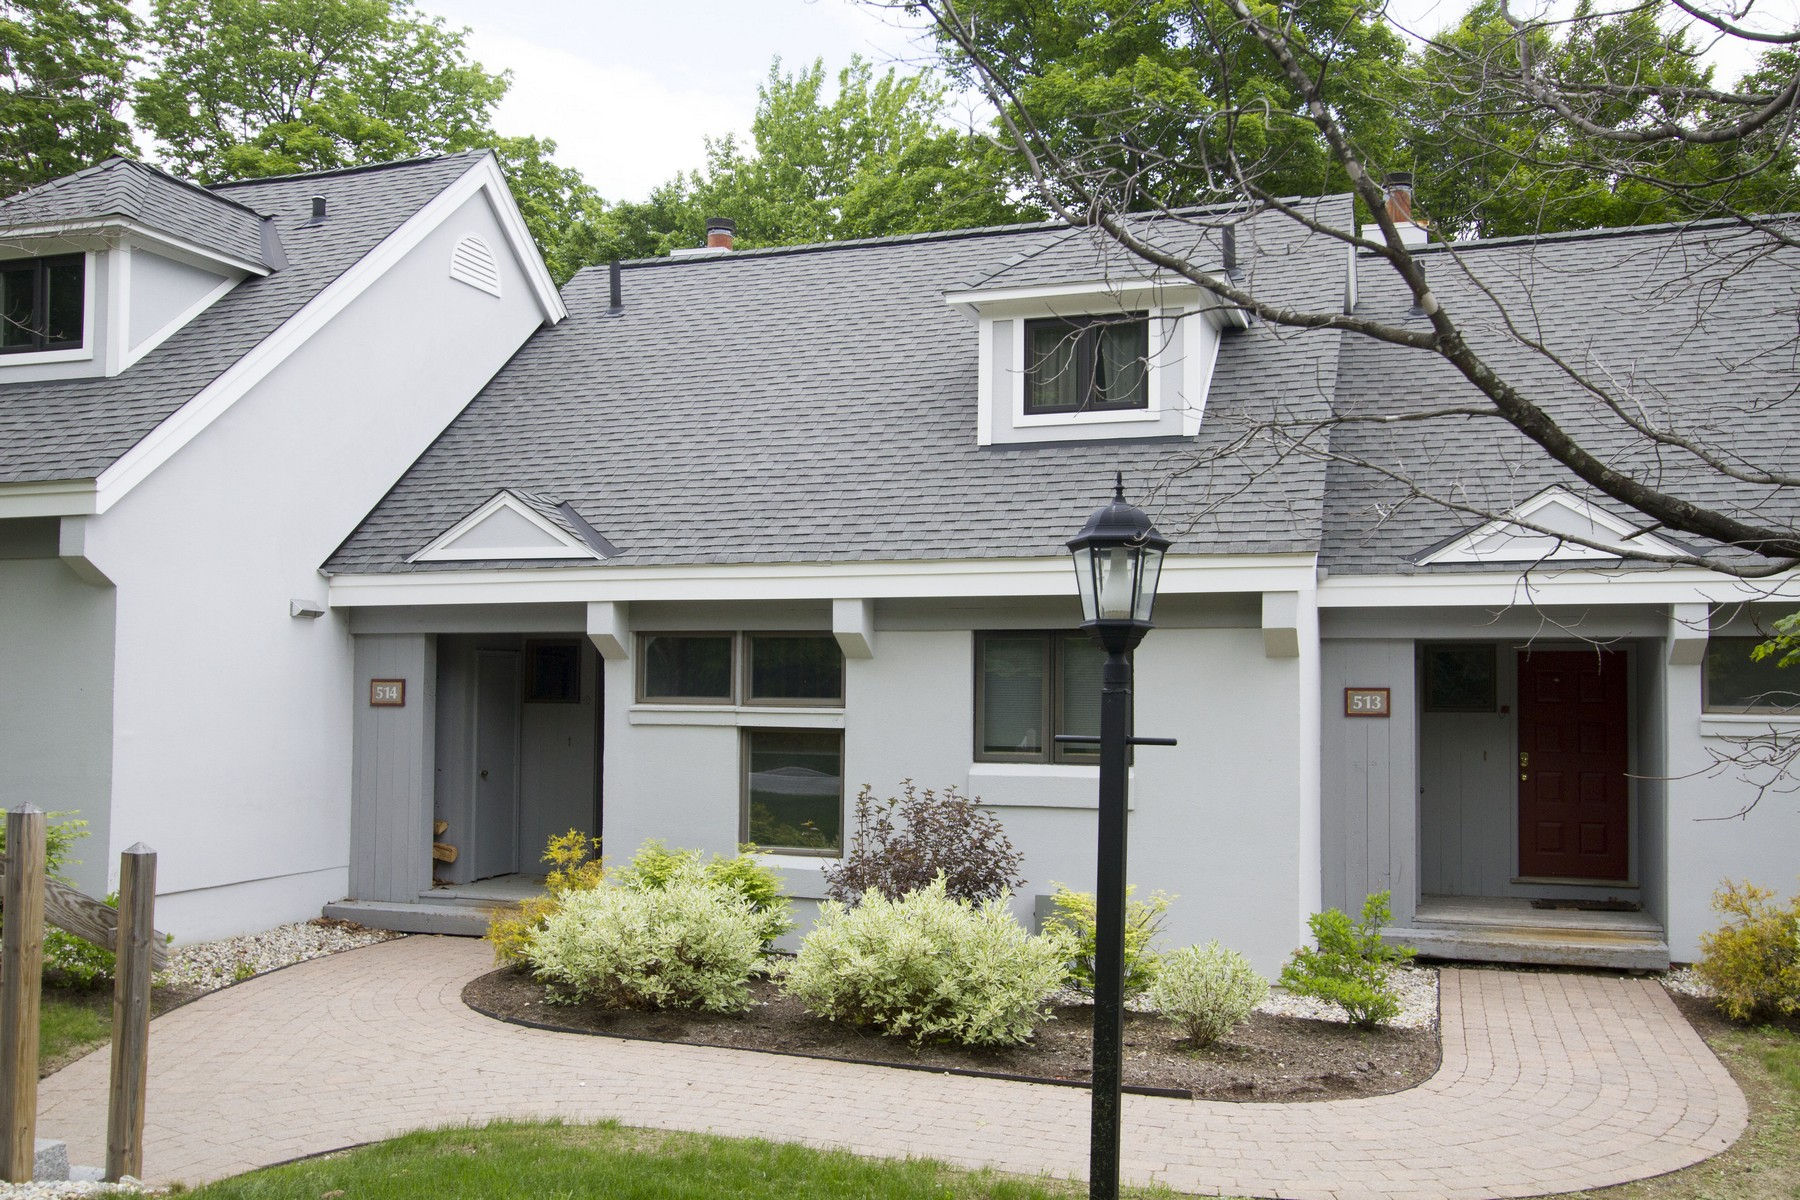 Condominiums for Sale at 22 High Point Drive 514, Stratton 22 High Point Dr 514 Stratton, Vermont 05155 United States